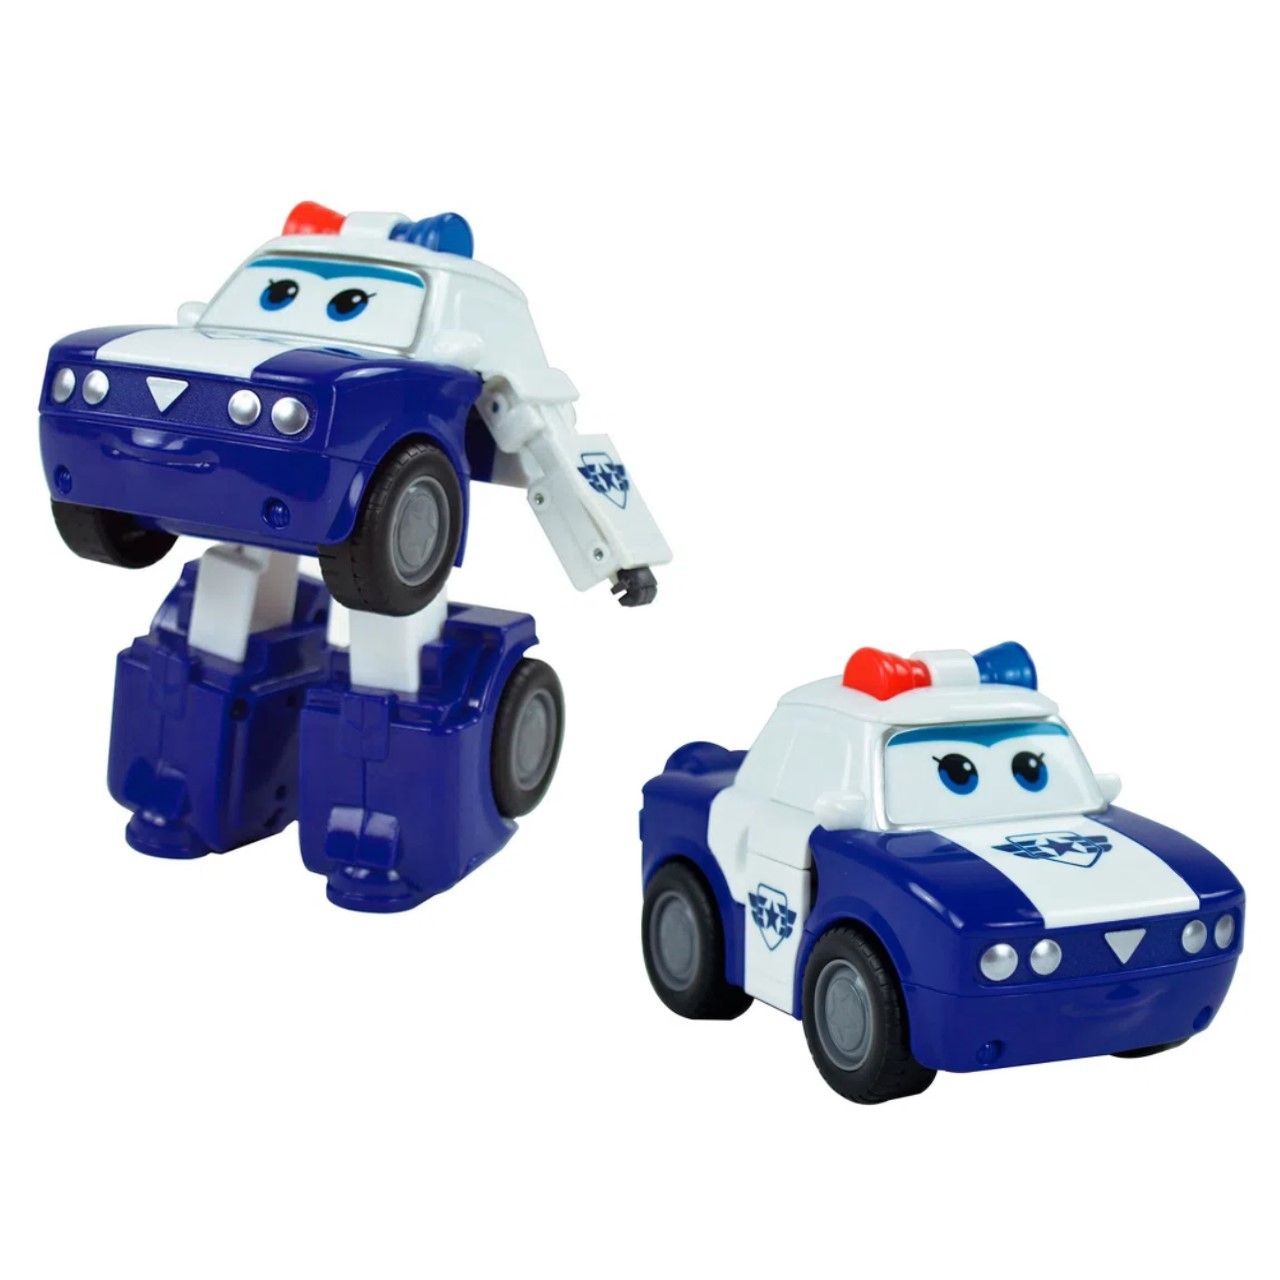 Super Wings Kim - Mini Boneco Transformável 6cm - Fun